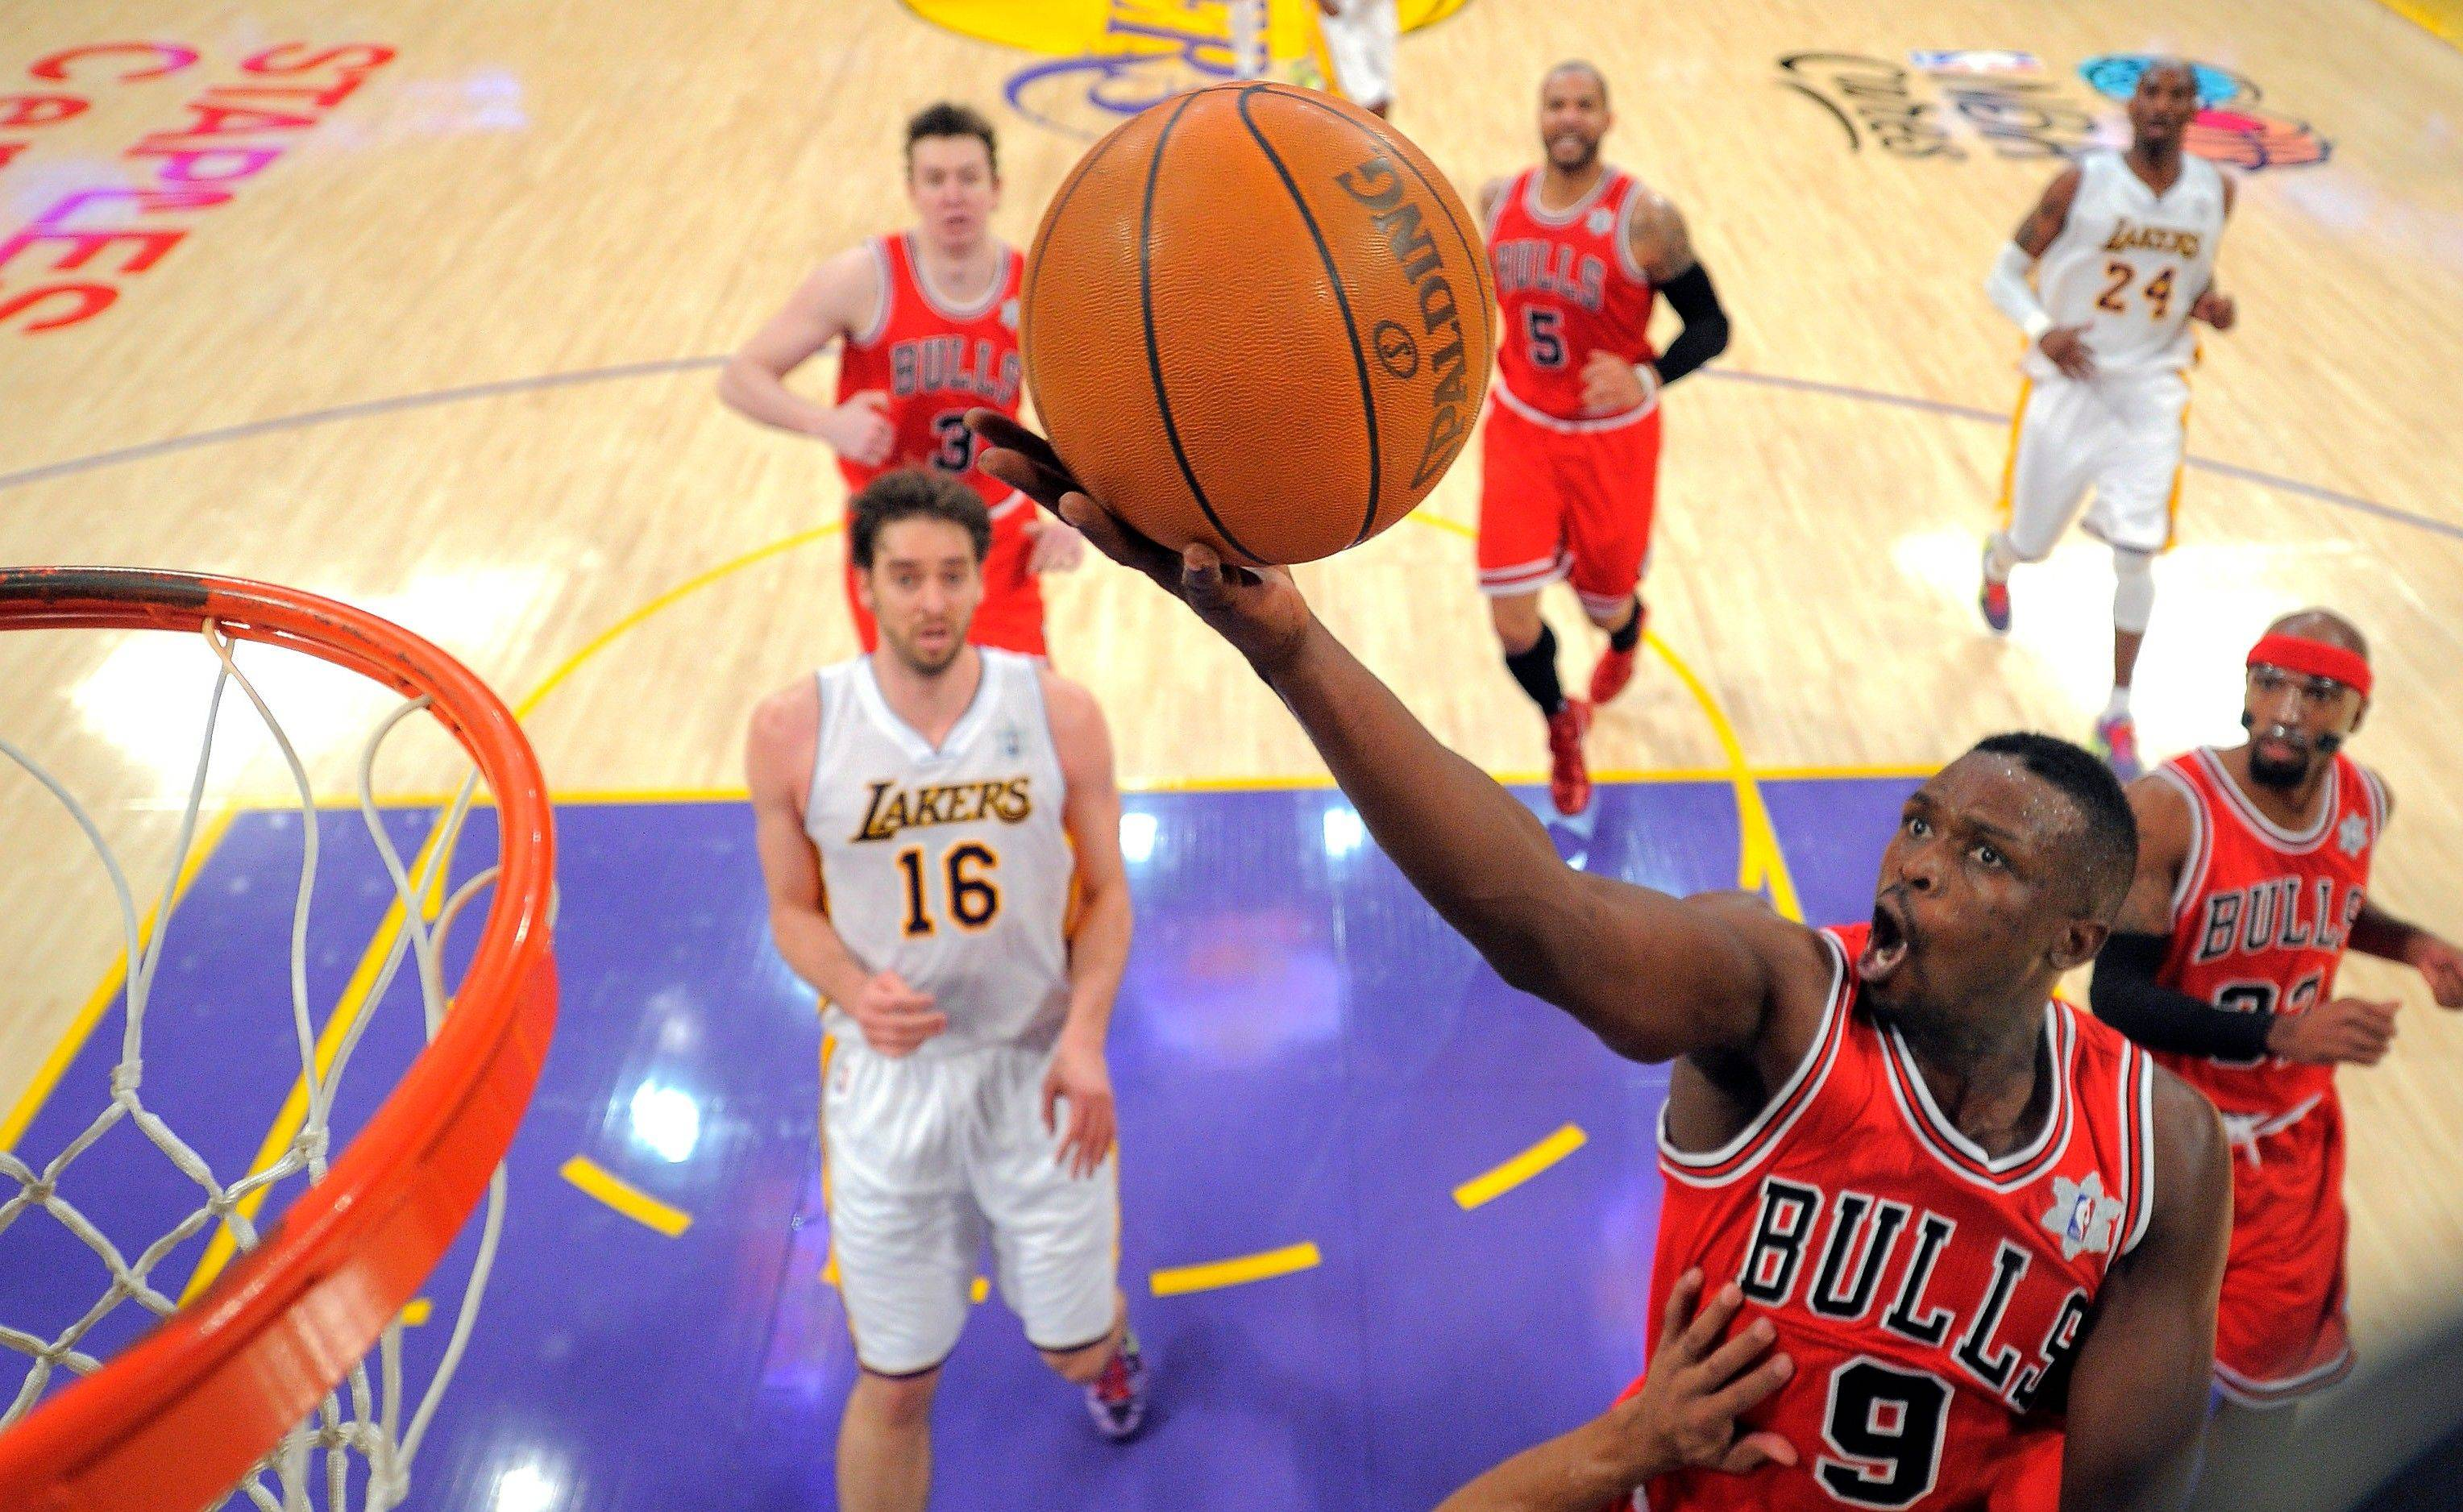 Bulls forward Luol Deng puts up a shot as Los Angeles Lakers forward Pau Gasol watches during the first half Sunday in Los Angeles.